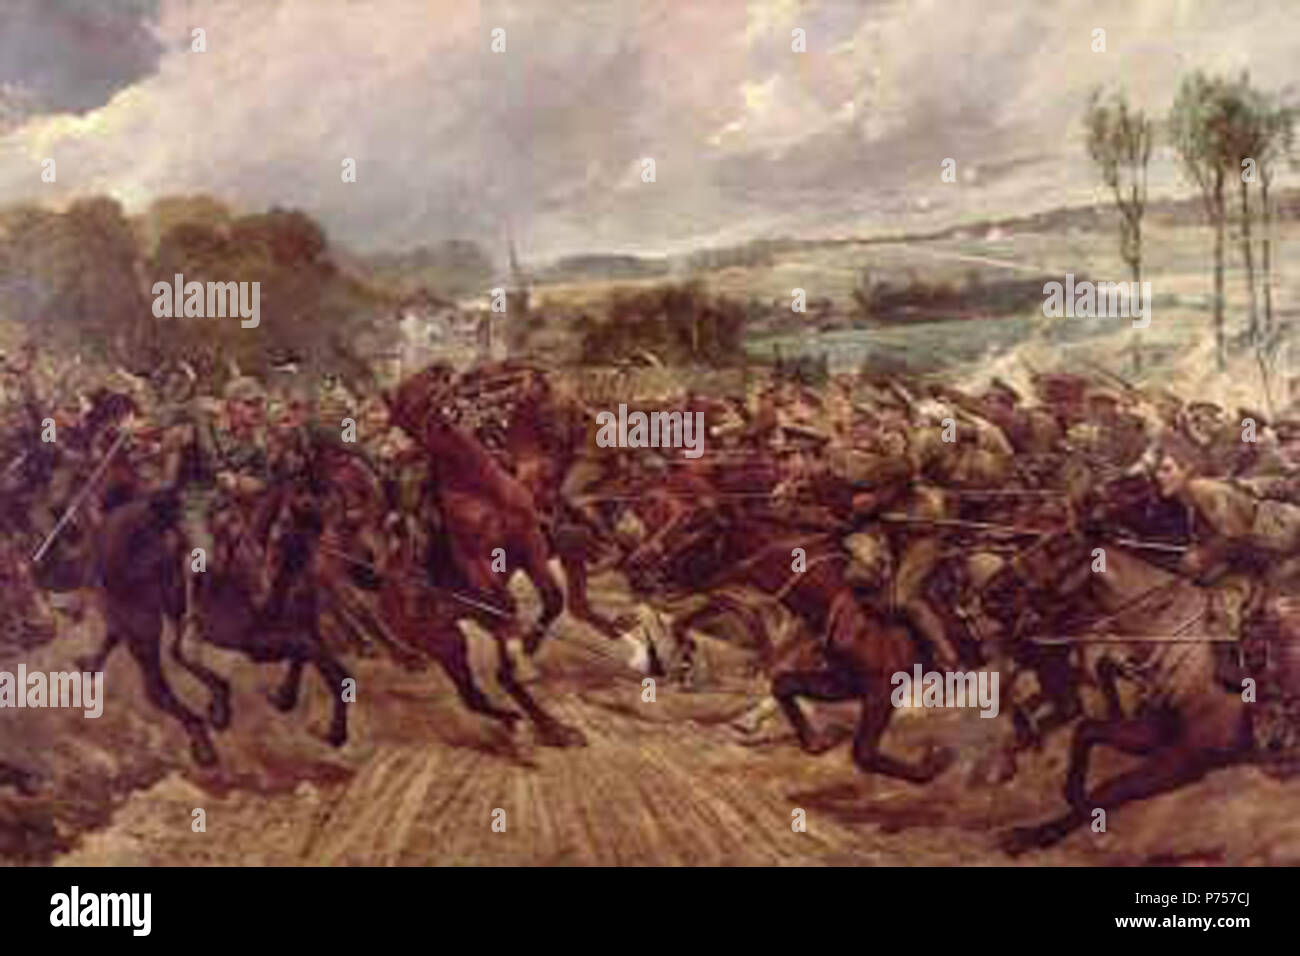 English: Depicts the charge of a squadron of the 9th Lancers against the Prussian Dragoons of the Guard at Moncel on the 7th September 1914. This was Cavalry action in the First World War when cavalry charged with both sides at full gallop. The 9th Lancers casualties were 3 killed and 7 wounded compared to heavy losses suffered by the Prussian Dragoons. before 1927 when the artist died 25 Charge of the 9th Lancers by Richard Caton Woodville - Stock Image